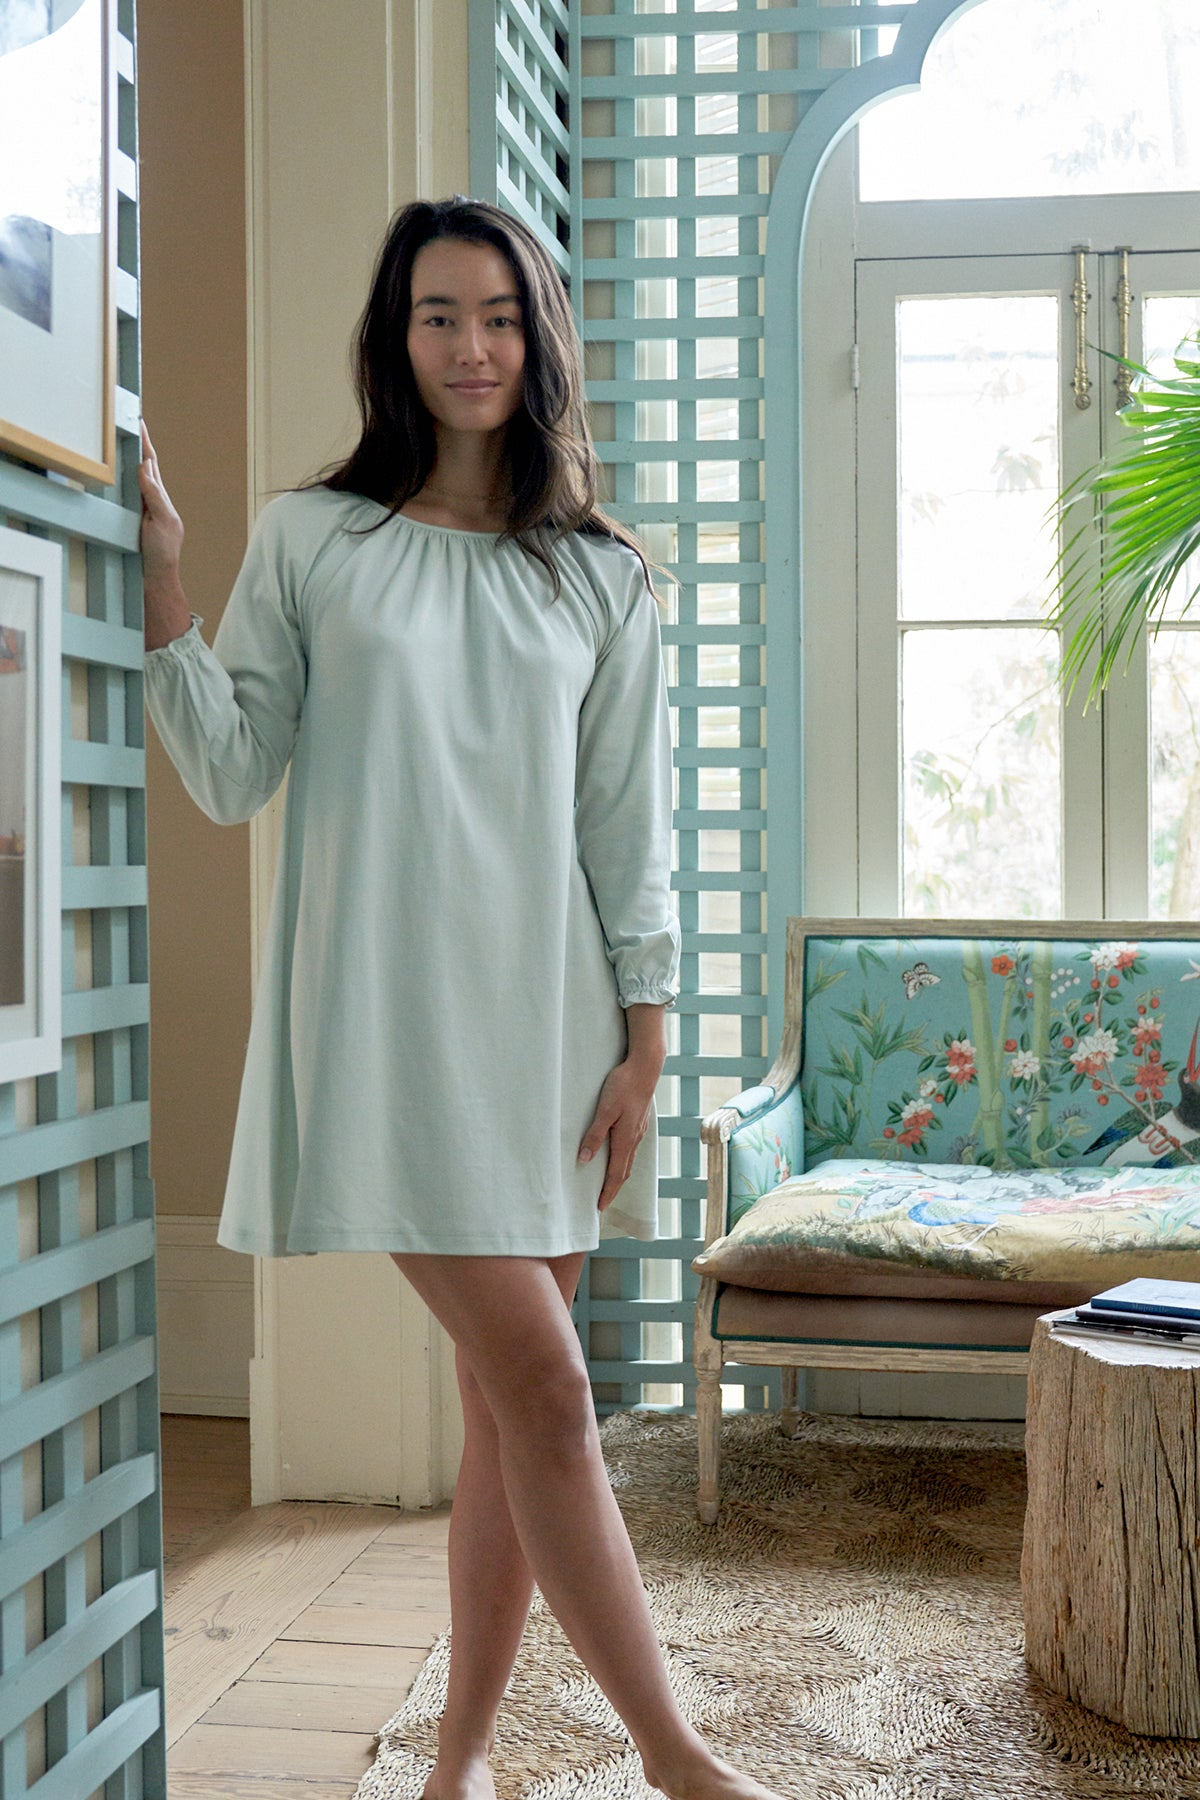 Pima Snooze Nightgown in Drift